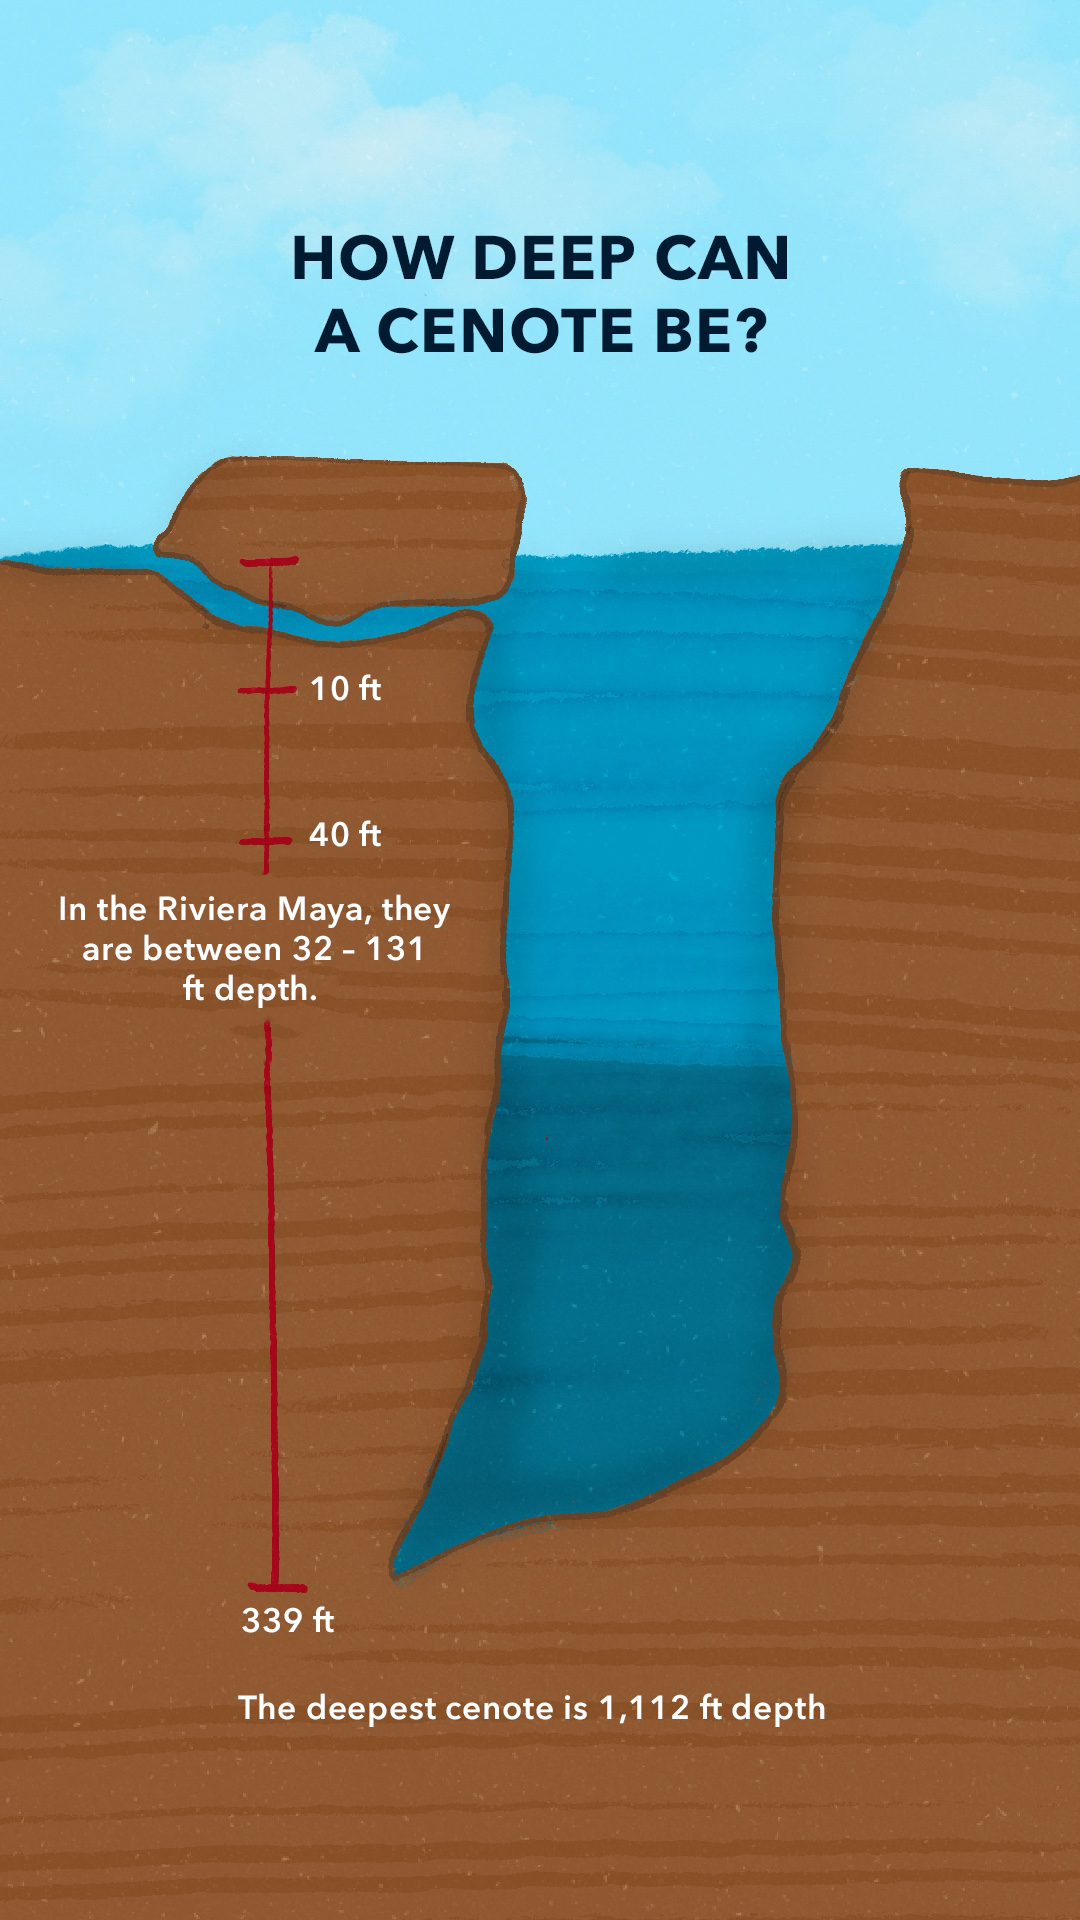 How deep can a cenote be?